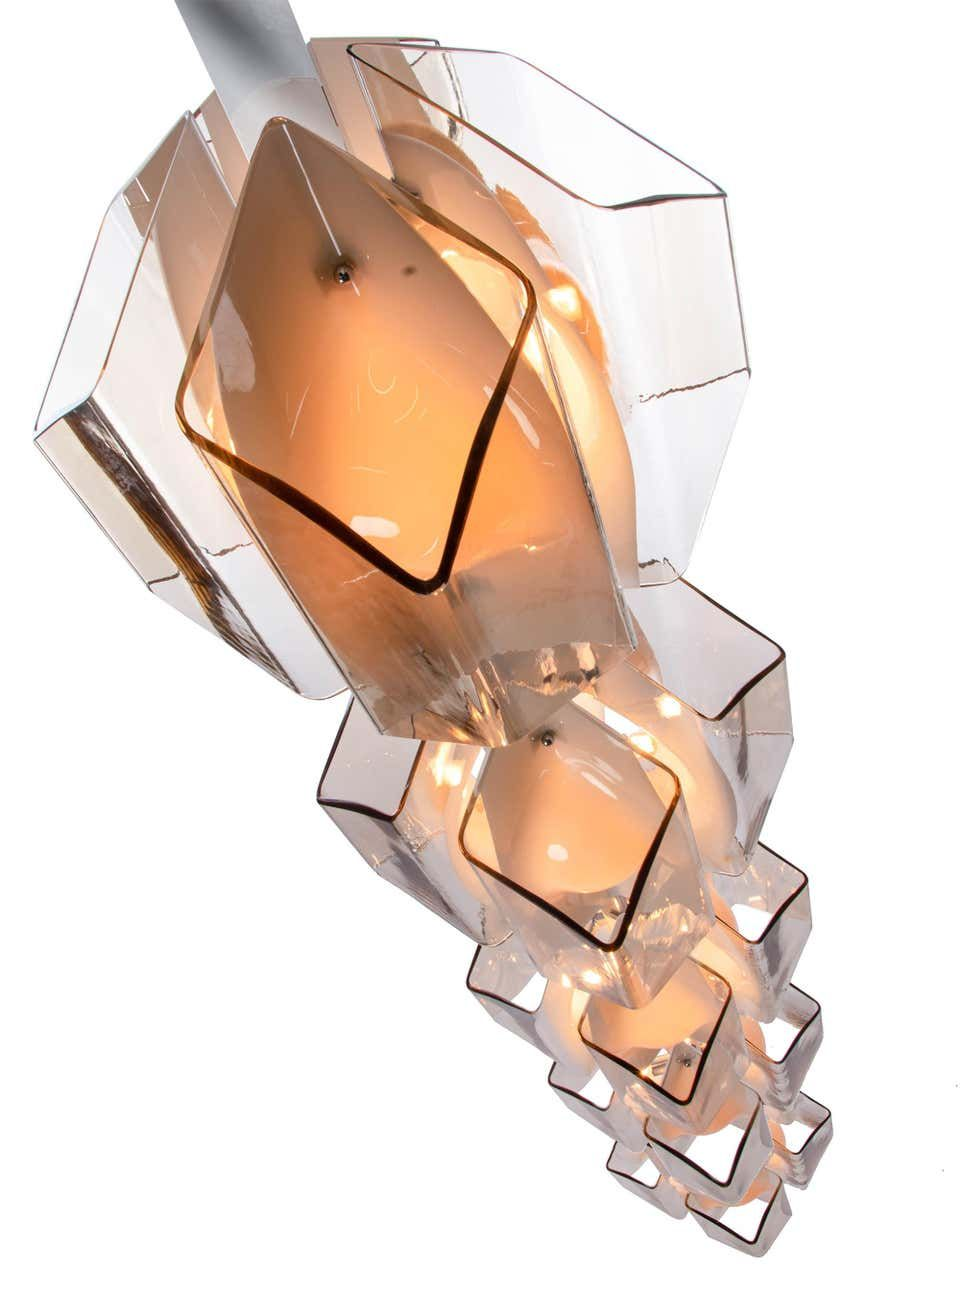 For Sale on 1stdibs - This spectacular 181 inches statement light is the perfect center piece for a lobby, foyer or entrance. It is made of large smoked and white blown Murano